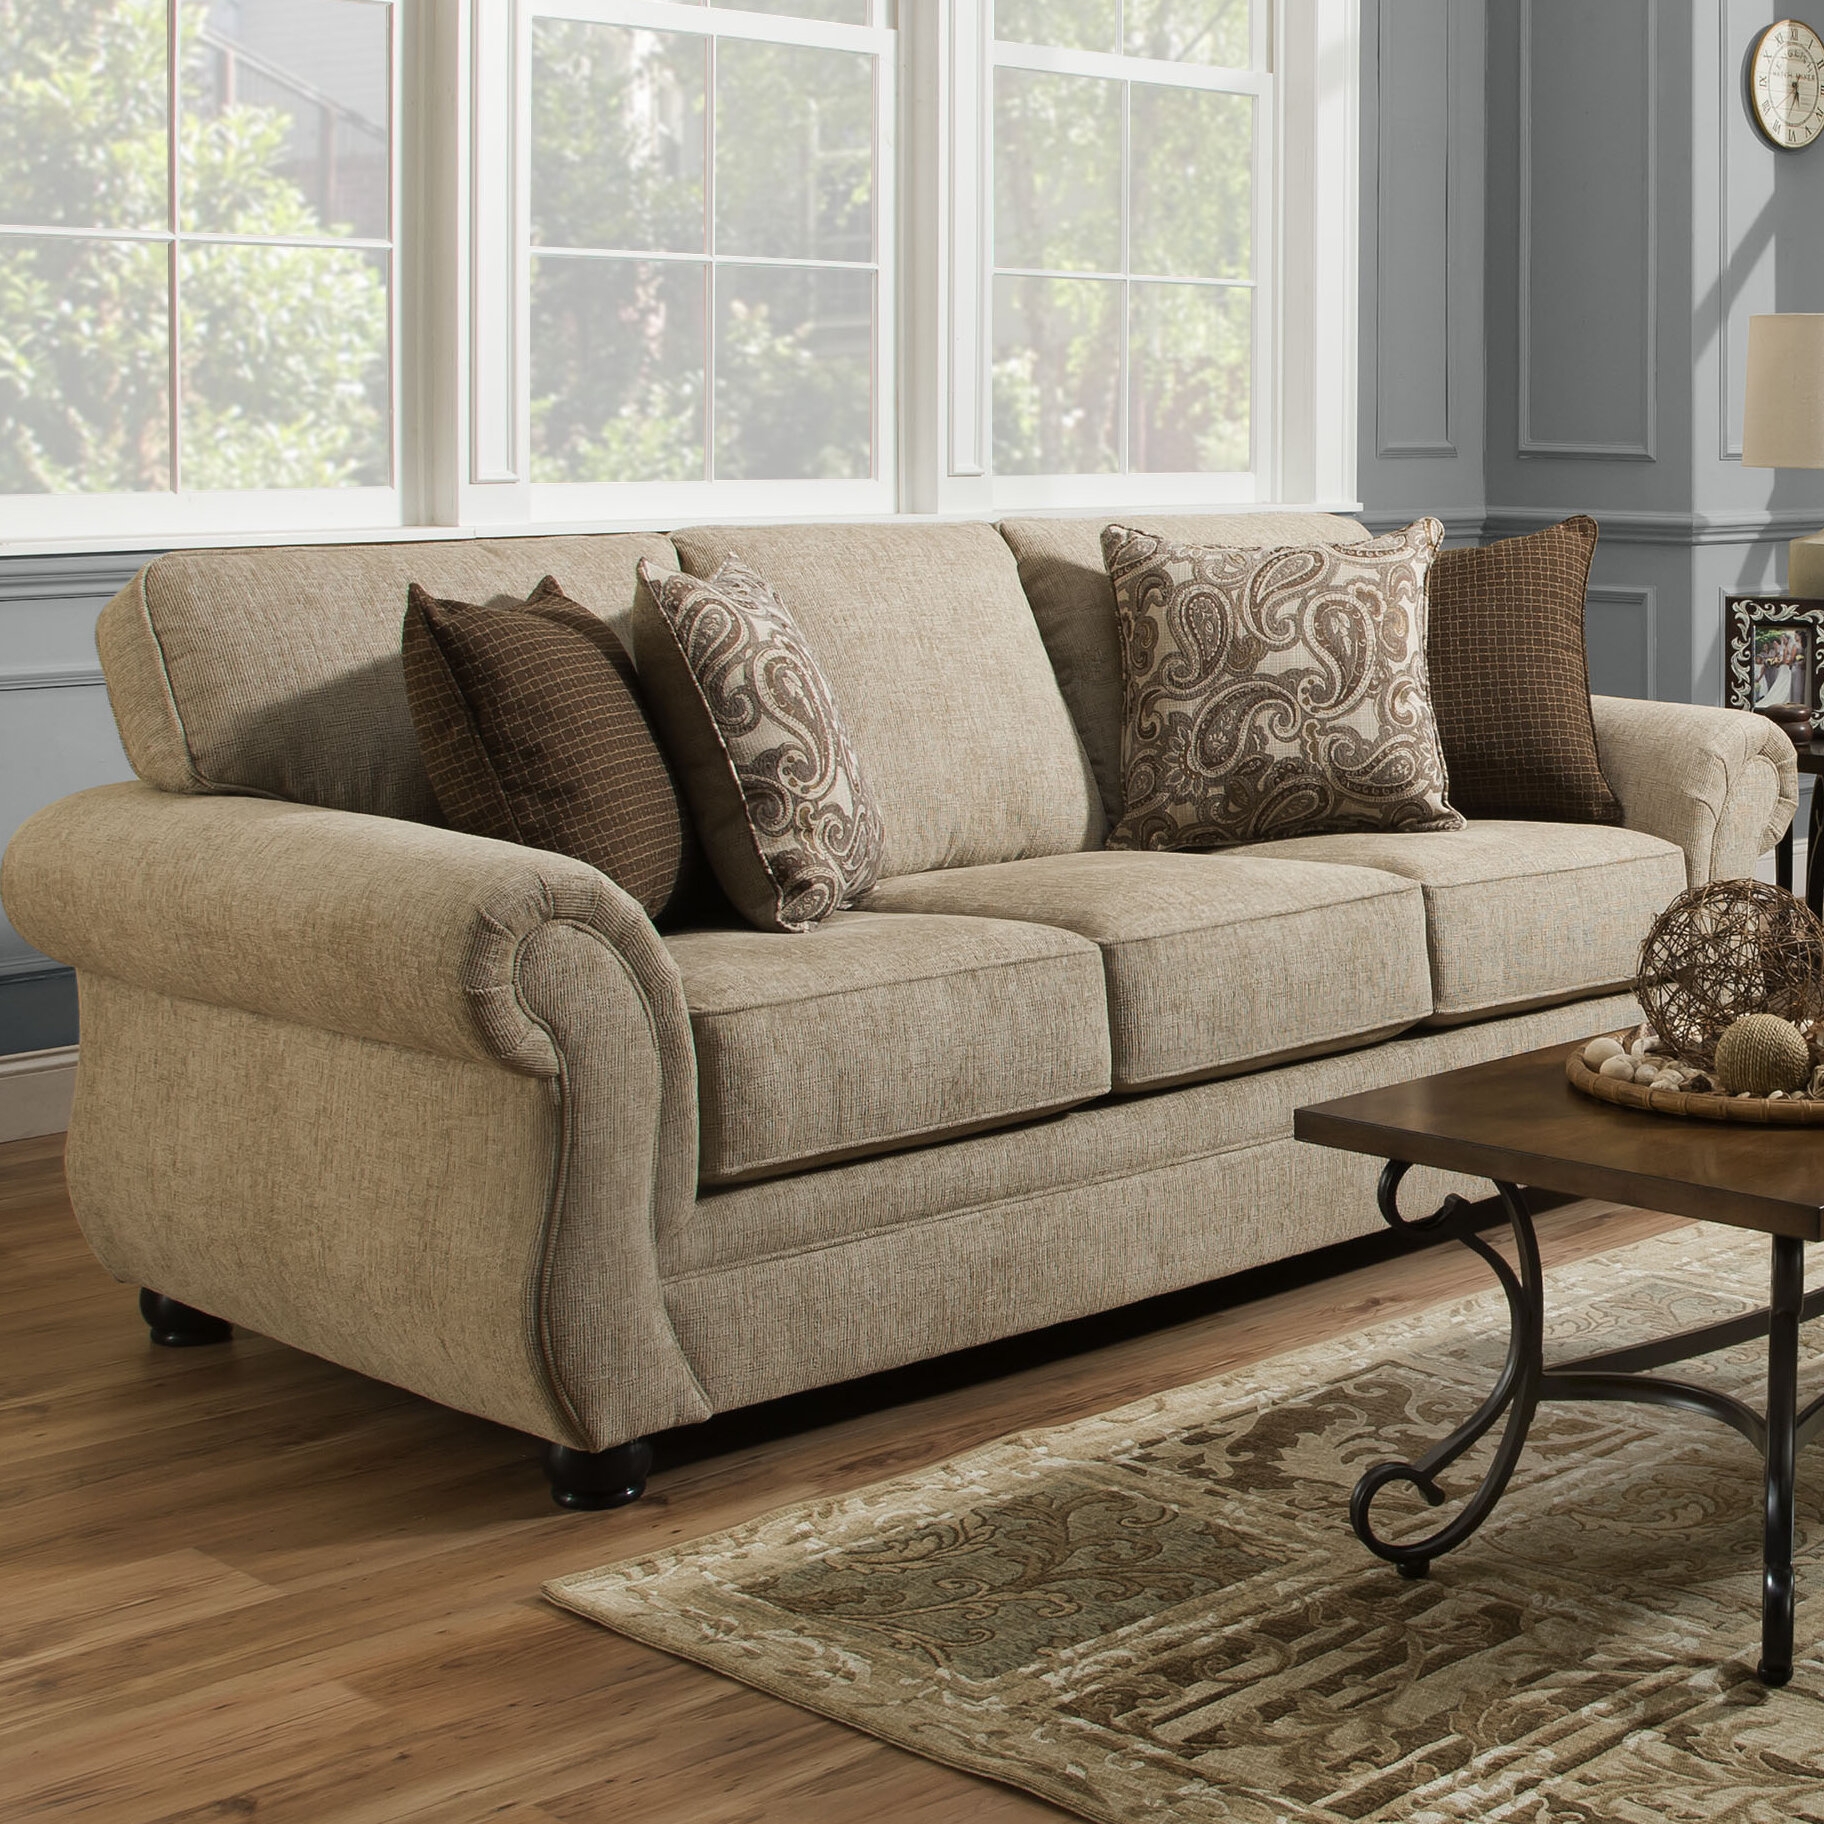 Simmons Beautyrest Sofa Bed Sofas Comfortable Simmons